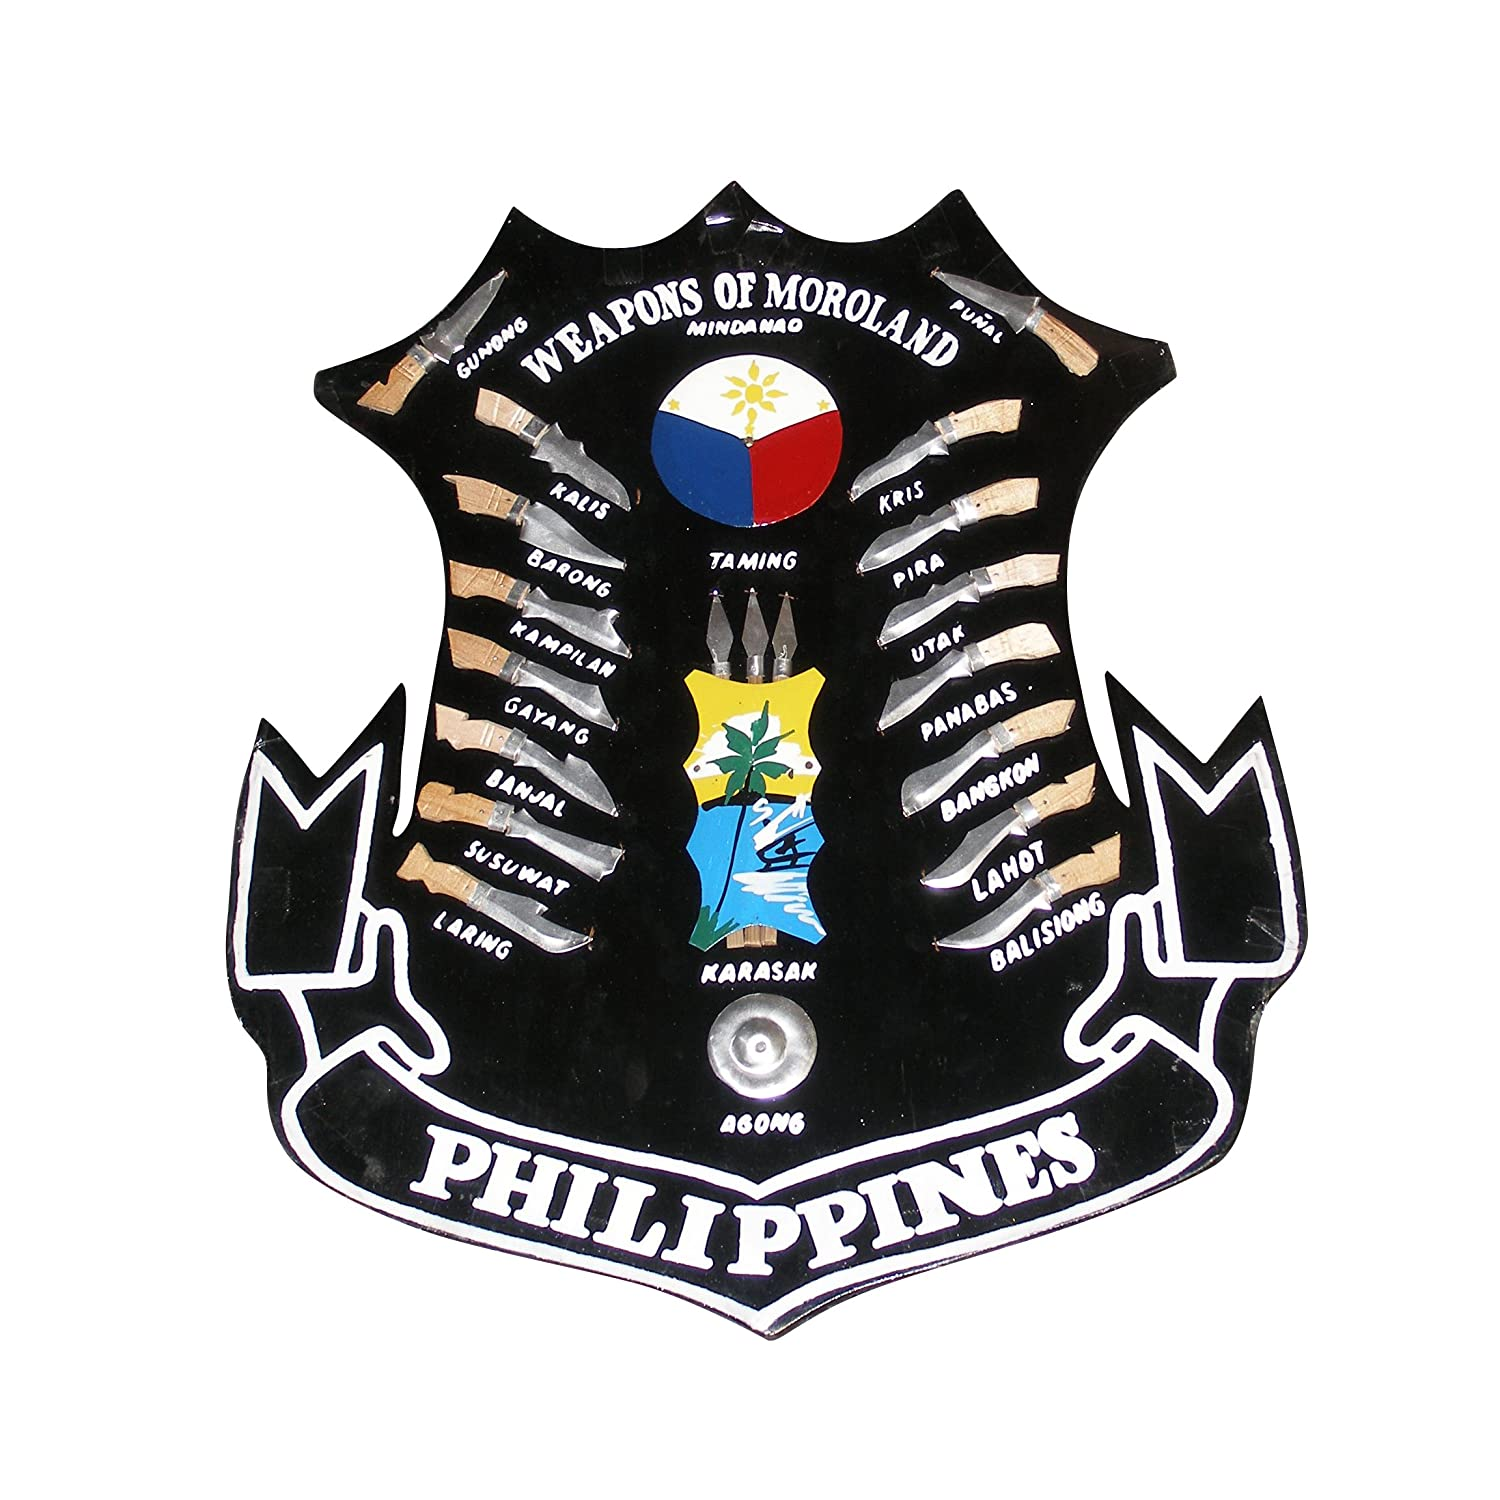 Amazon filipino plaque martial arts weapons of philippines amazon filipino plaque martial arts weapons of philippines moroland mindanao large 15 x 13 sports outdoors biocorpaavc